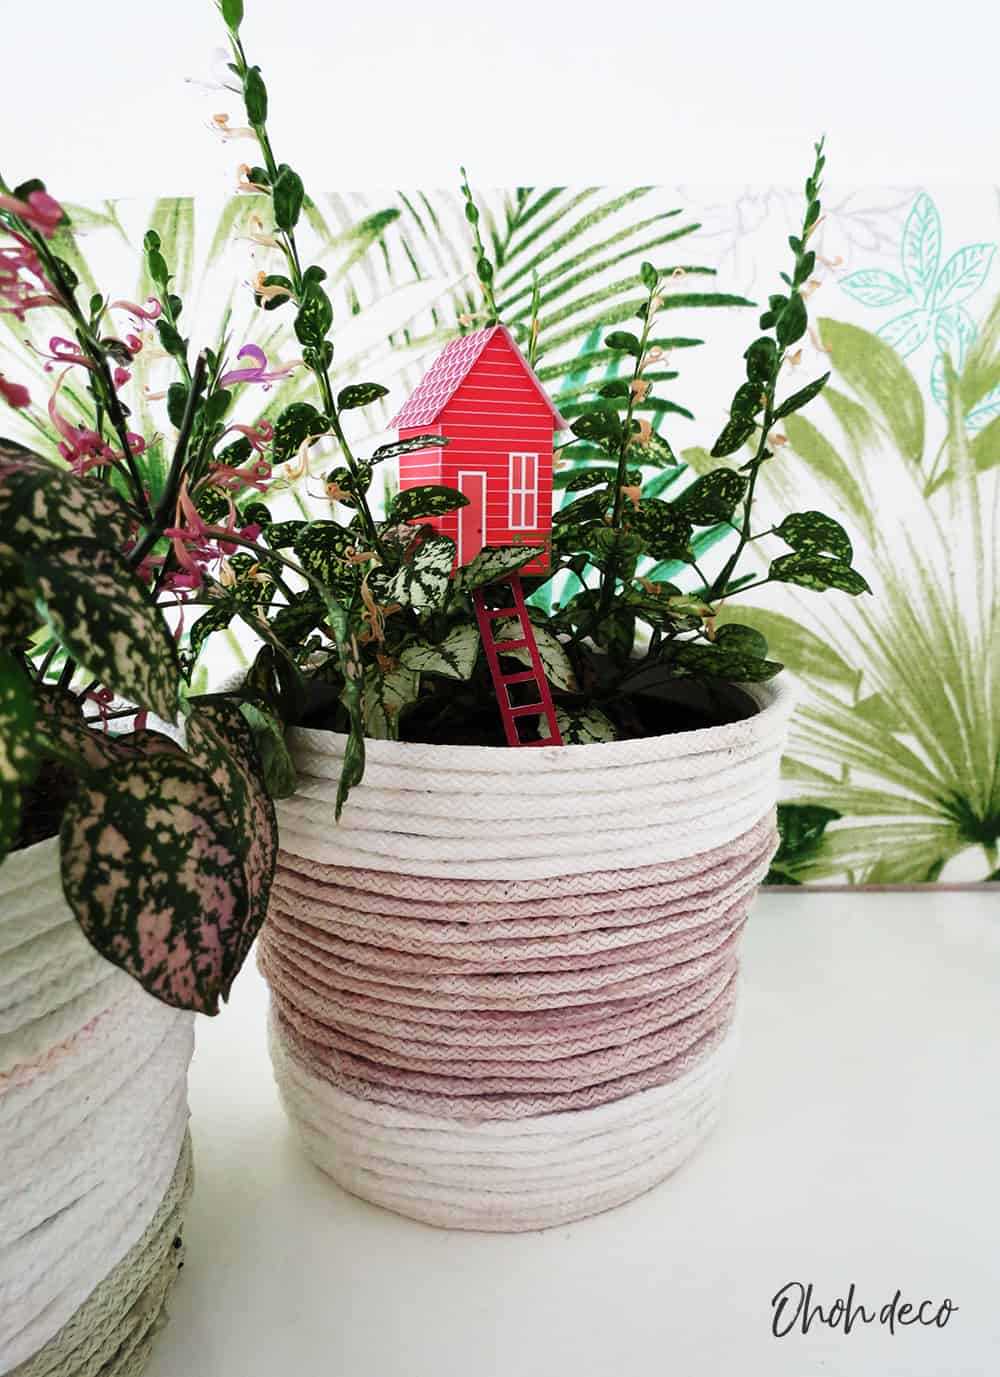 place the paper house template in a planter